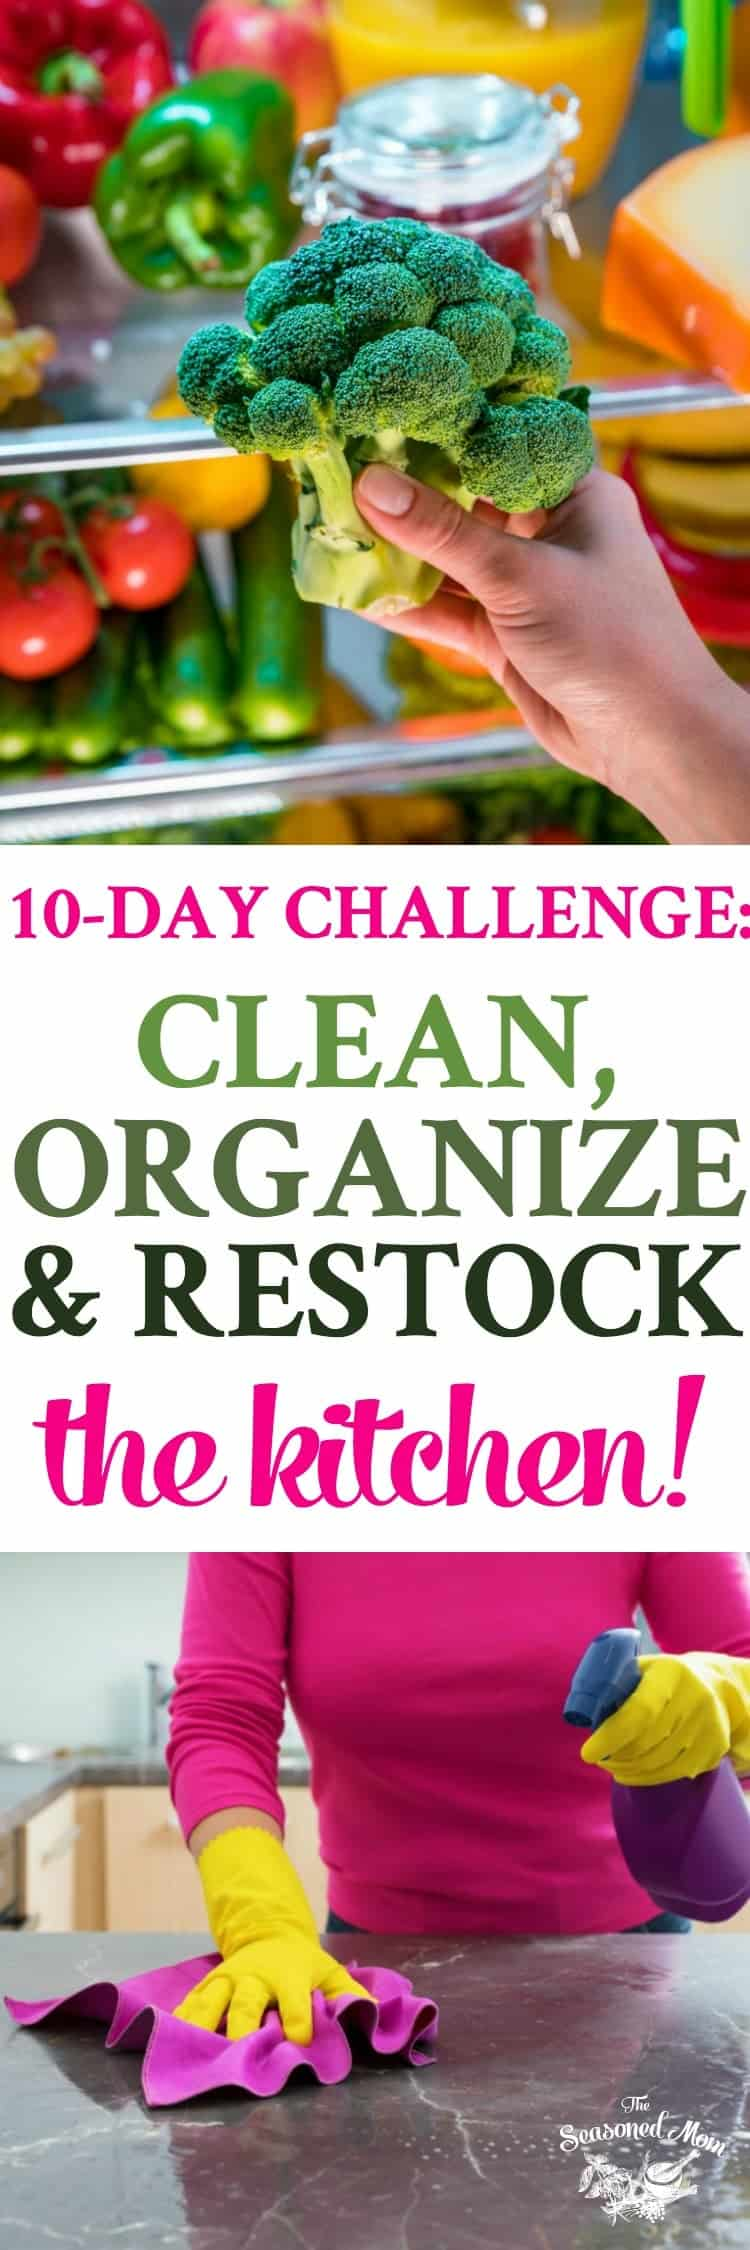 A 10-Day Challenge to Clean, Organize and Restock Your Kitchen! Home Organization | Cleaning Hacks | Cleaning Schedule #kitchen #organization #cleaning